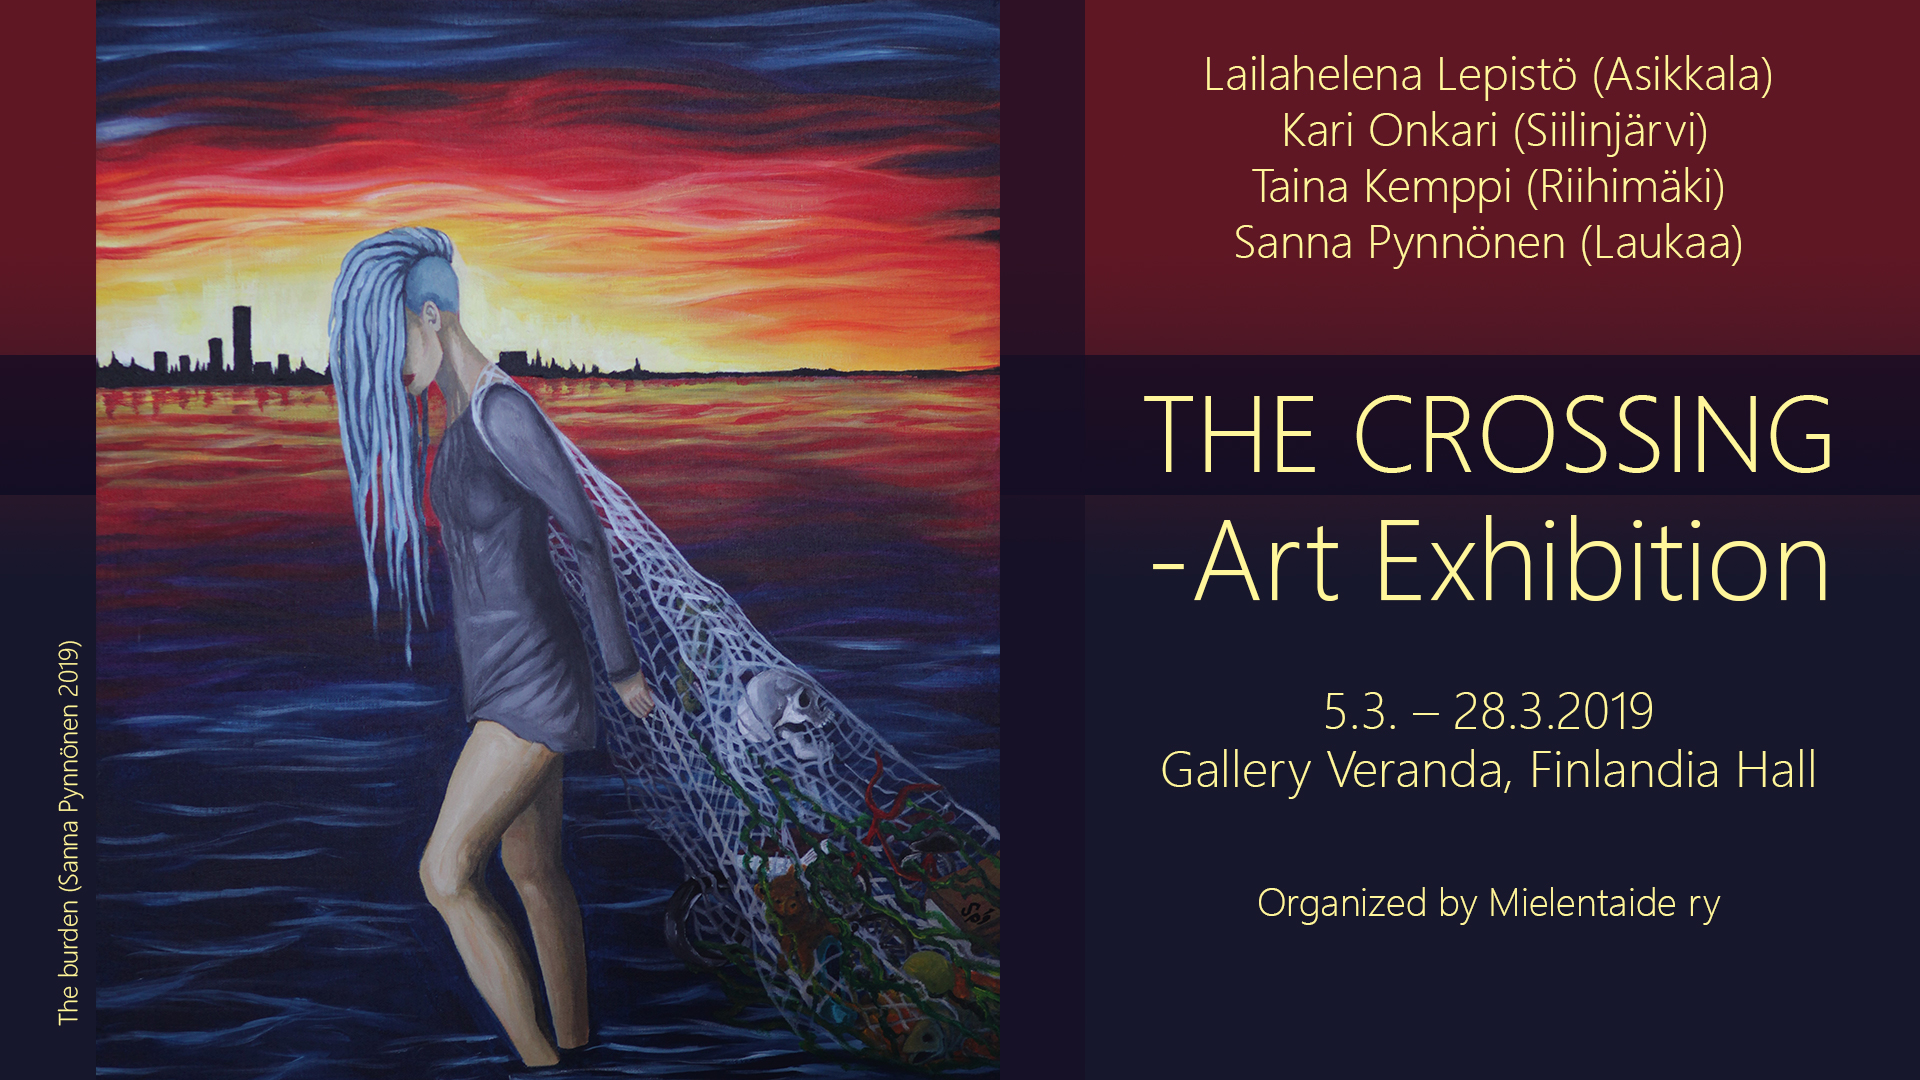 The Crossing -Art Exhibition